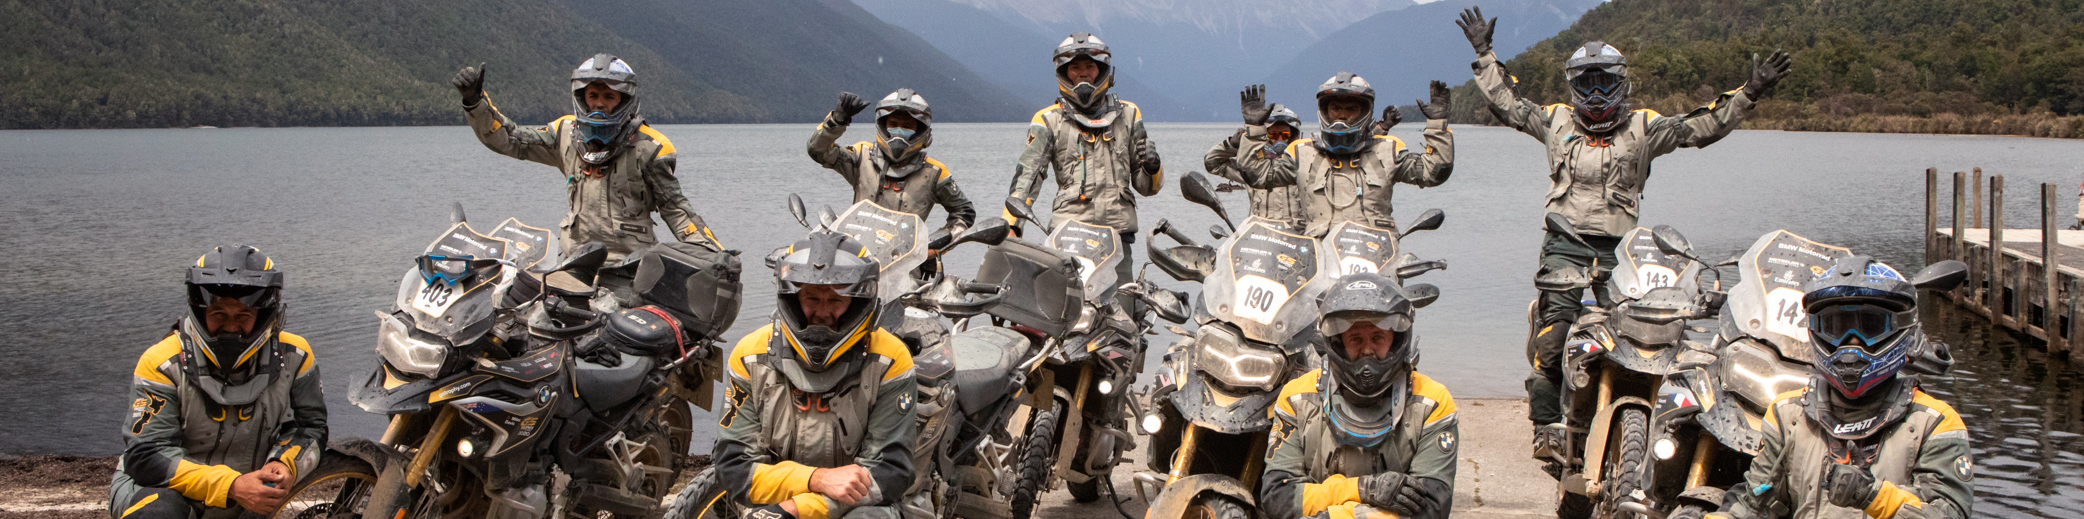 A group of riders at the BMW Int. GS Trophy 2020